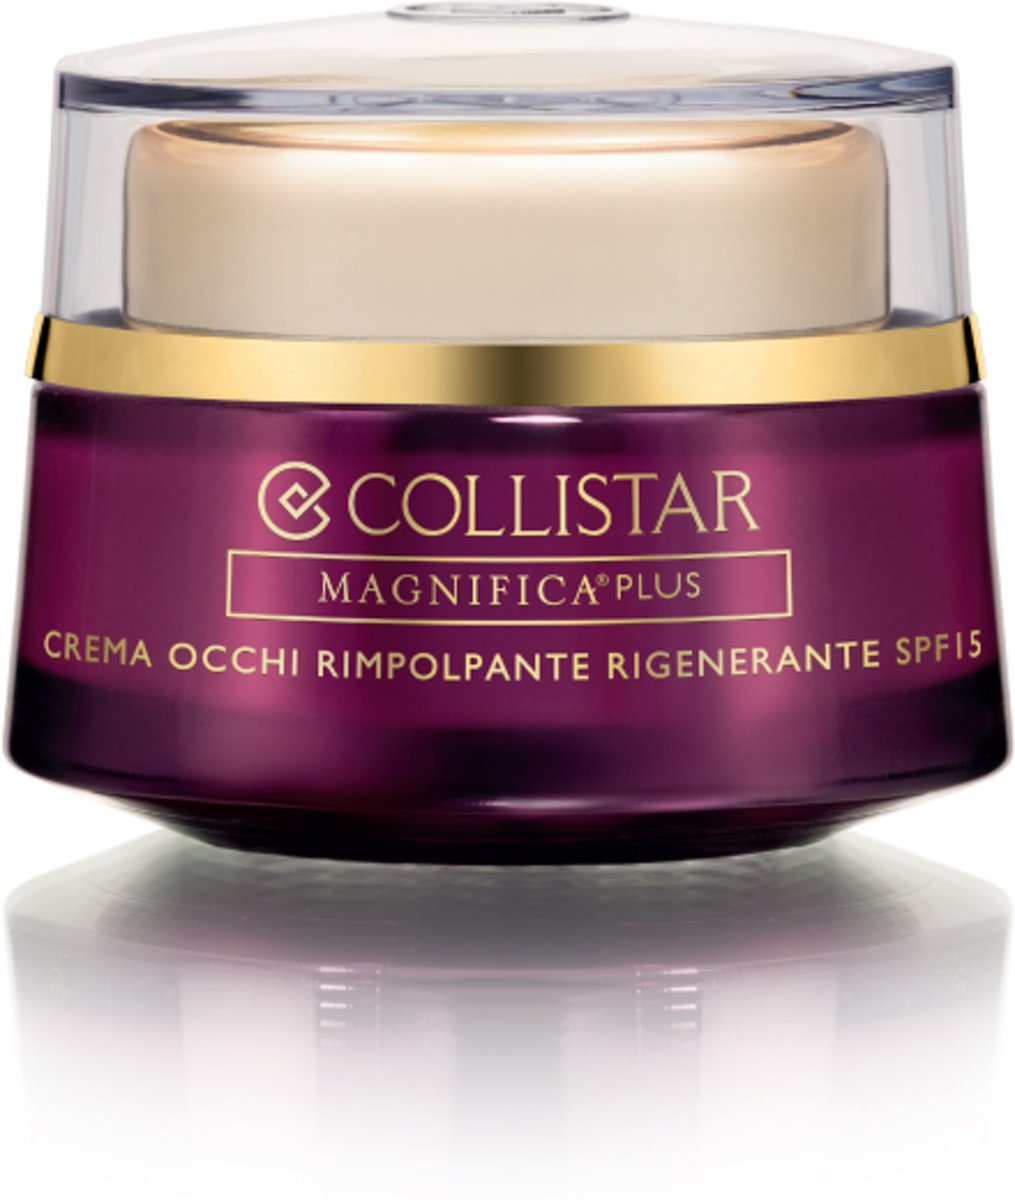 Collistar Gezicht Magnifica Plus Eye Cream SPF 15 - 15 ml - Oogcreme